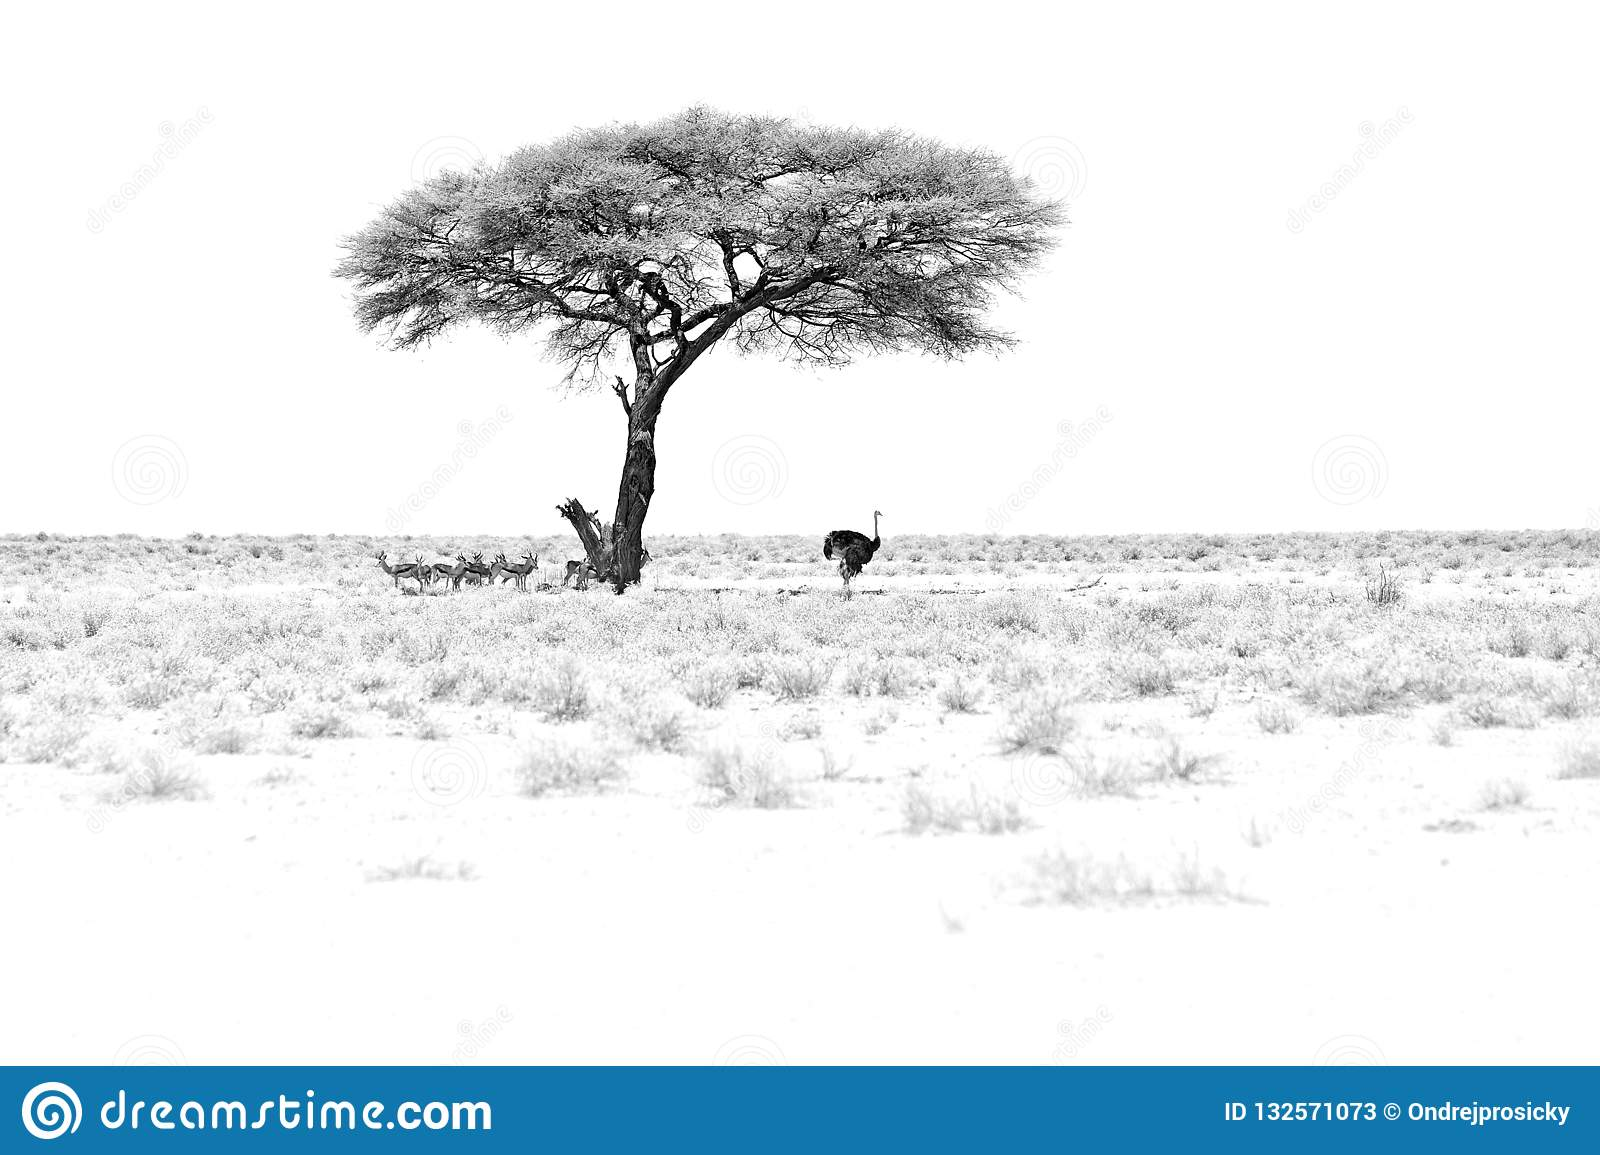 Black and white art. Dry hot day with sun in Etosha NP, Namibia. Herd of antelope springbok and ostrich hidden below the tree, in